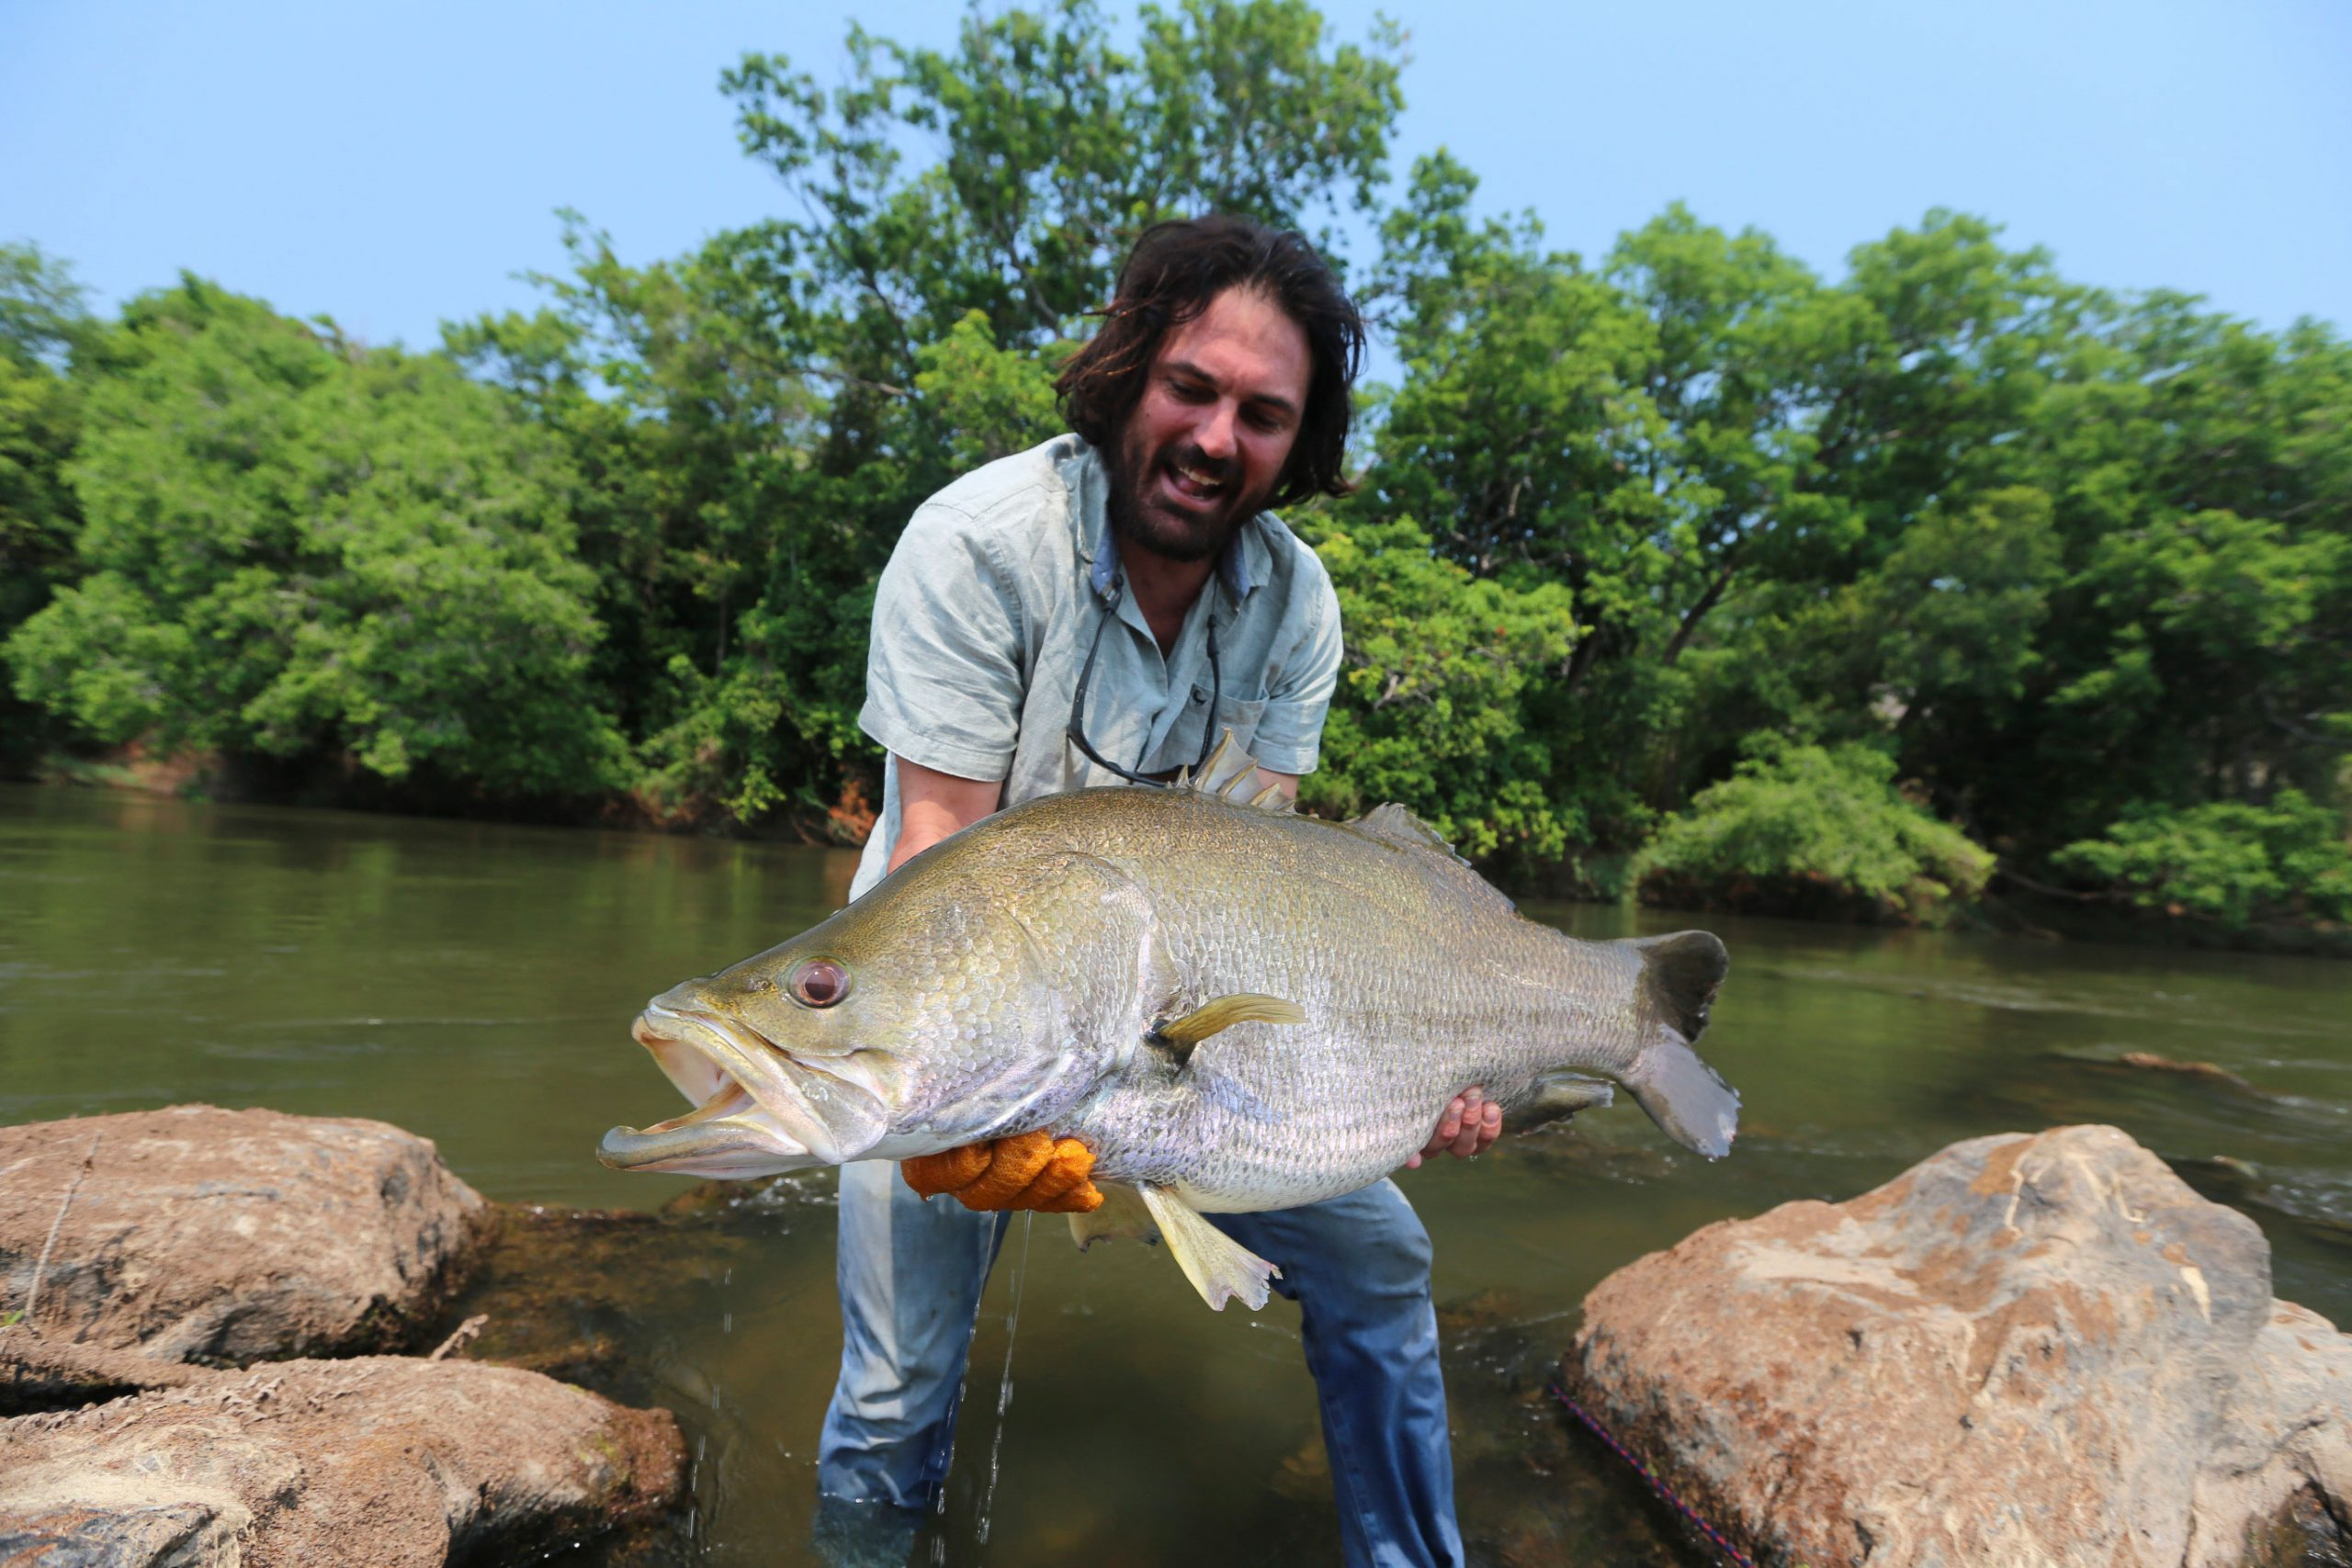 Ed Ghaui with a Nile perch